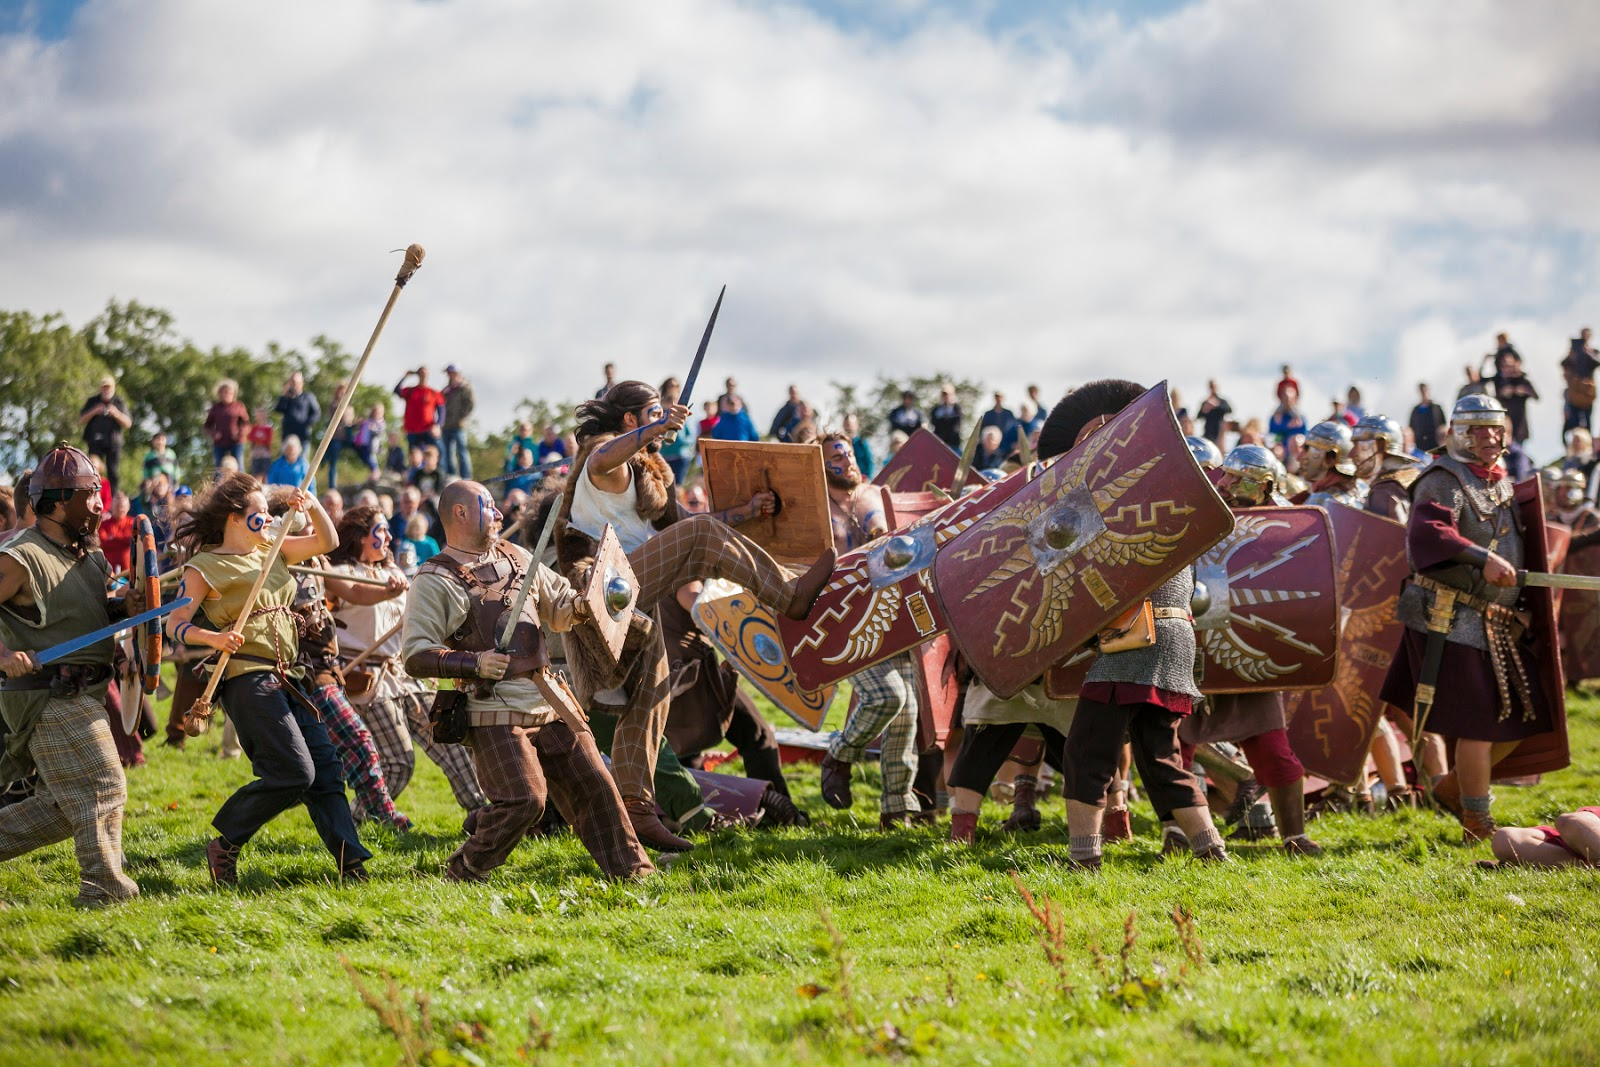 Hadrian's Wall Live 2016 - Sat 3rd & Sun 4th September. Book your tickets now.